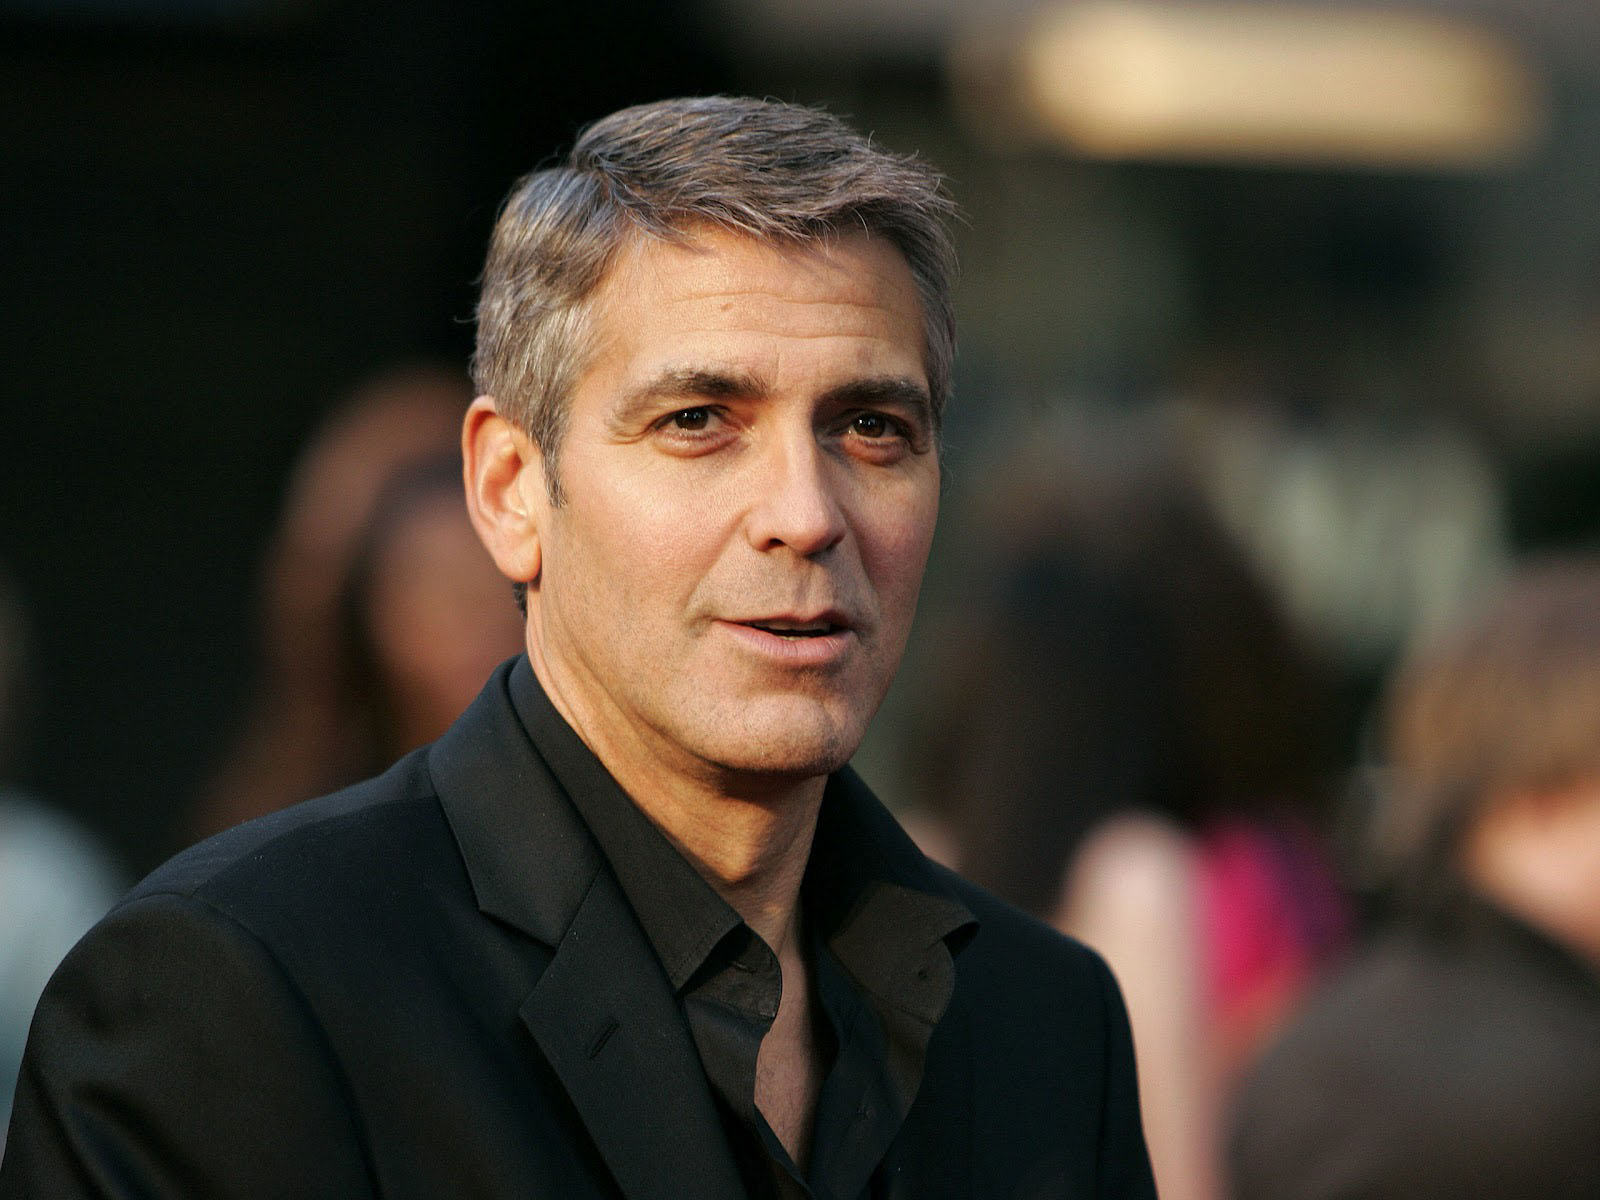 George Clooney Black Suit Wallpaper 617 1600x1200 px 1600x1200